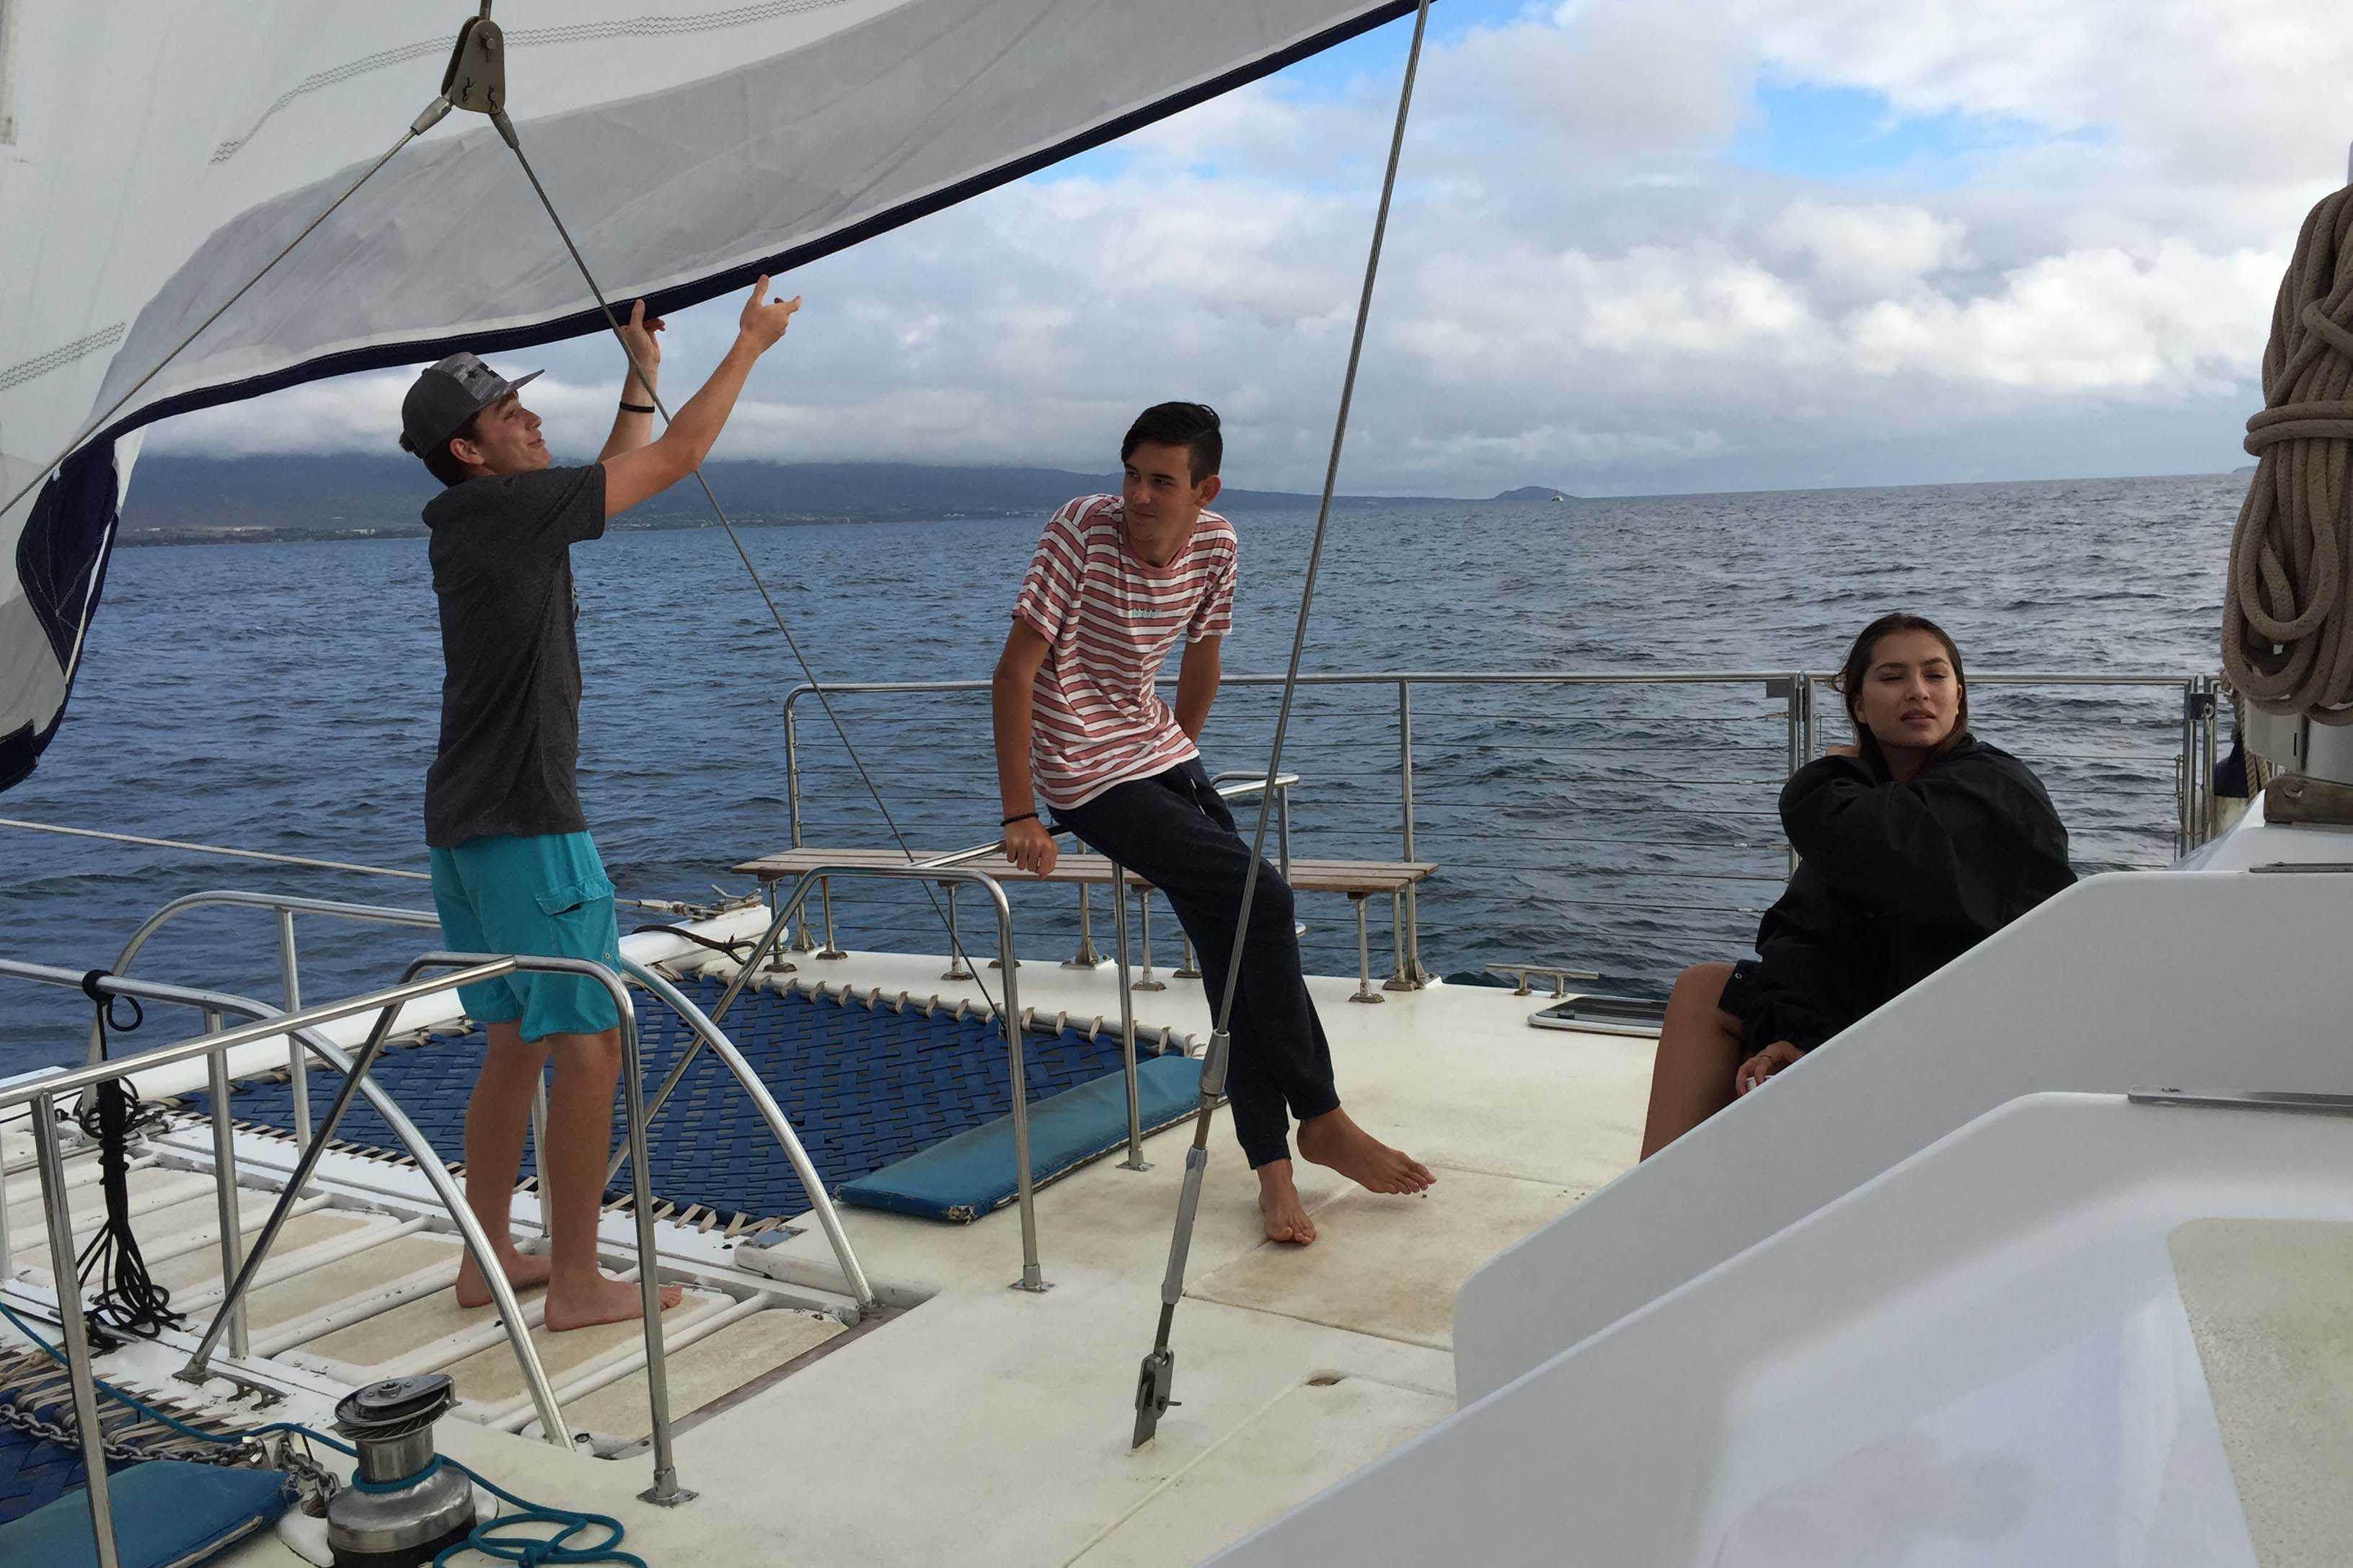 Students+sailed+around++the+waters+of+Maui+and+Lanai+during+Winterim+Week+with+Trilogy.+